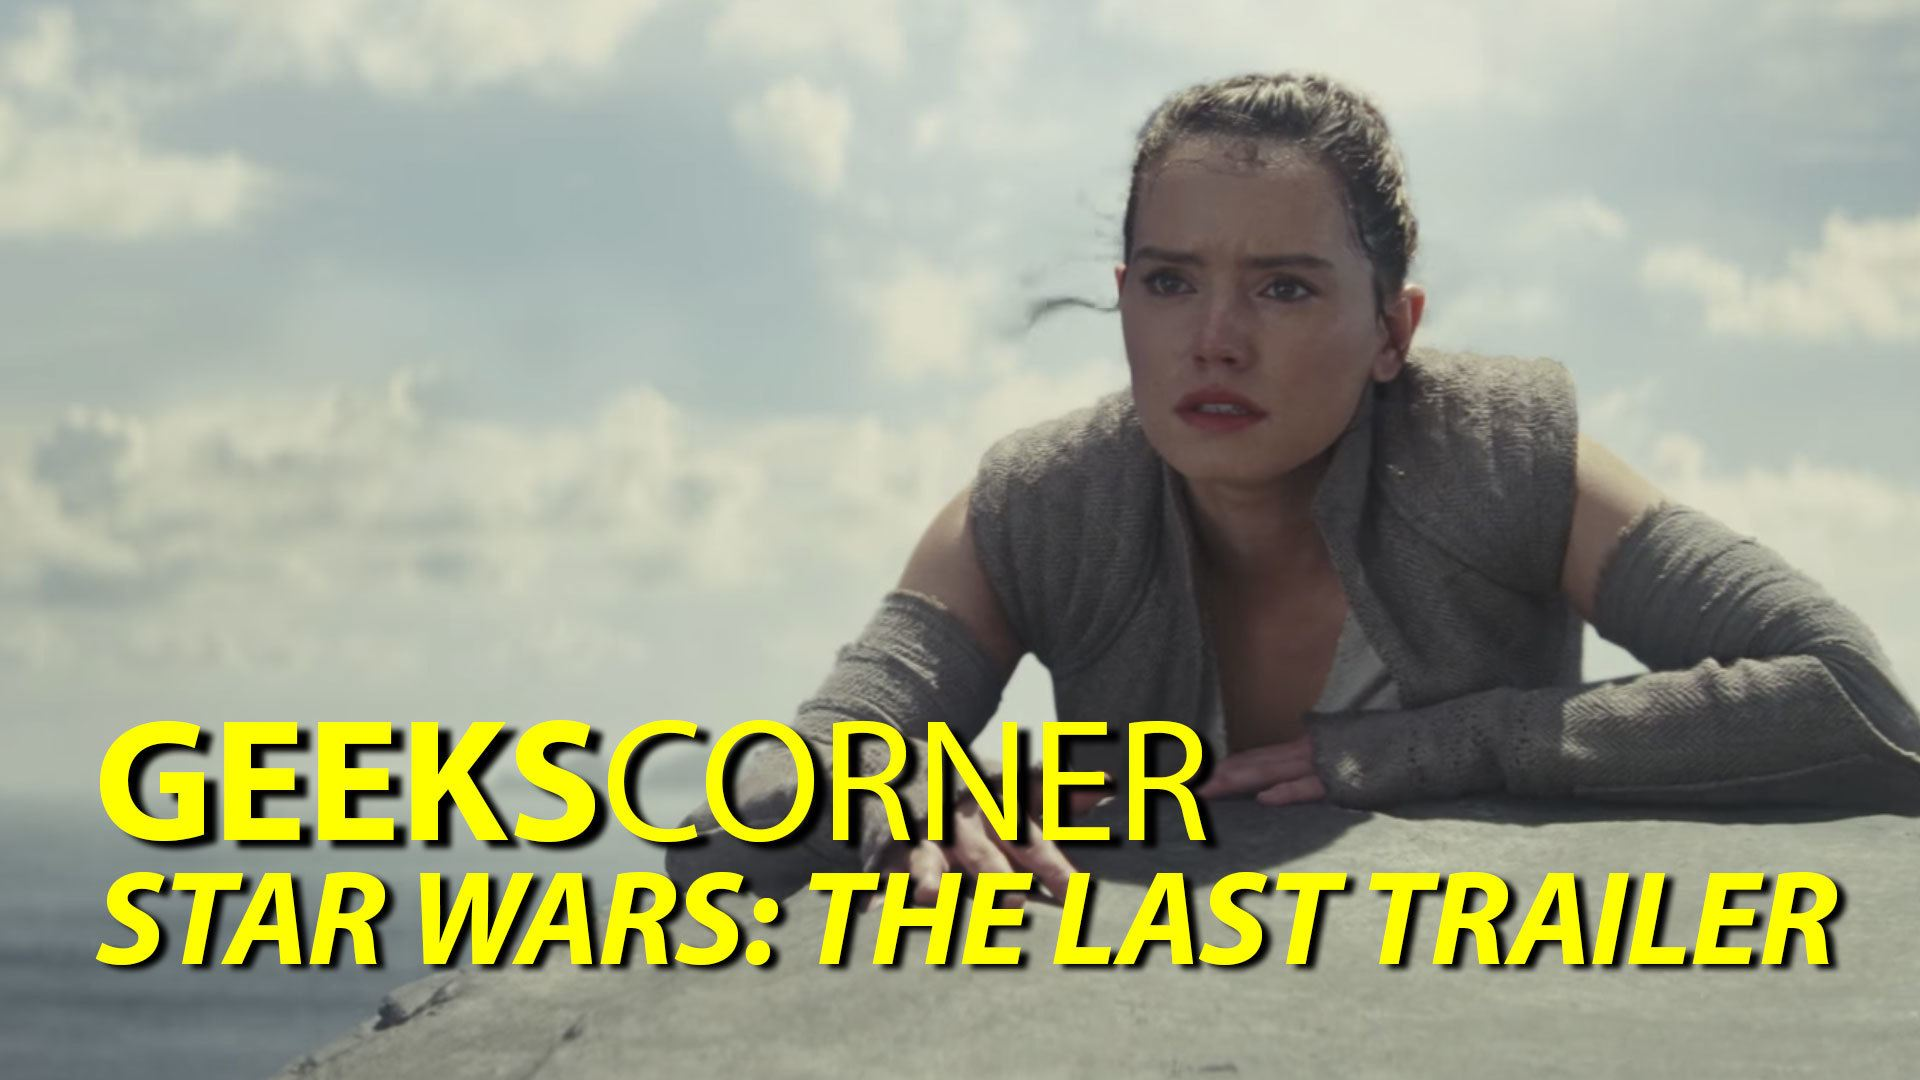 Star Wars: The Last Trailer - GEEKS CORNER - Episode 802